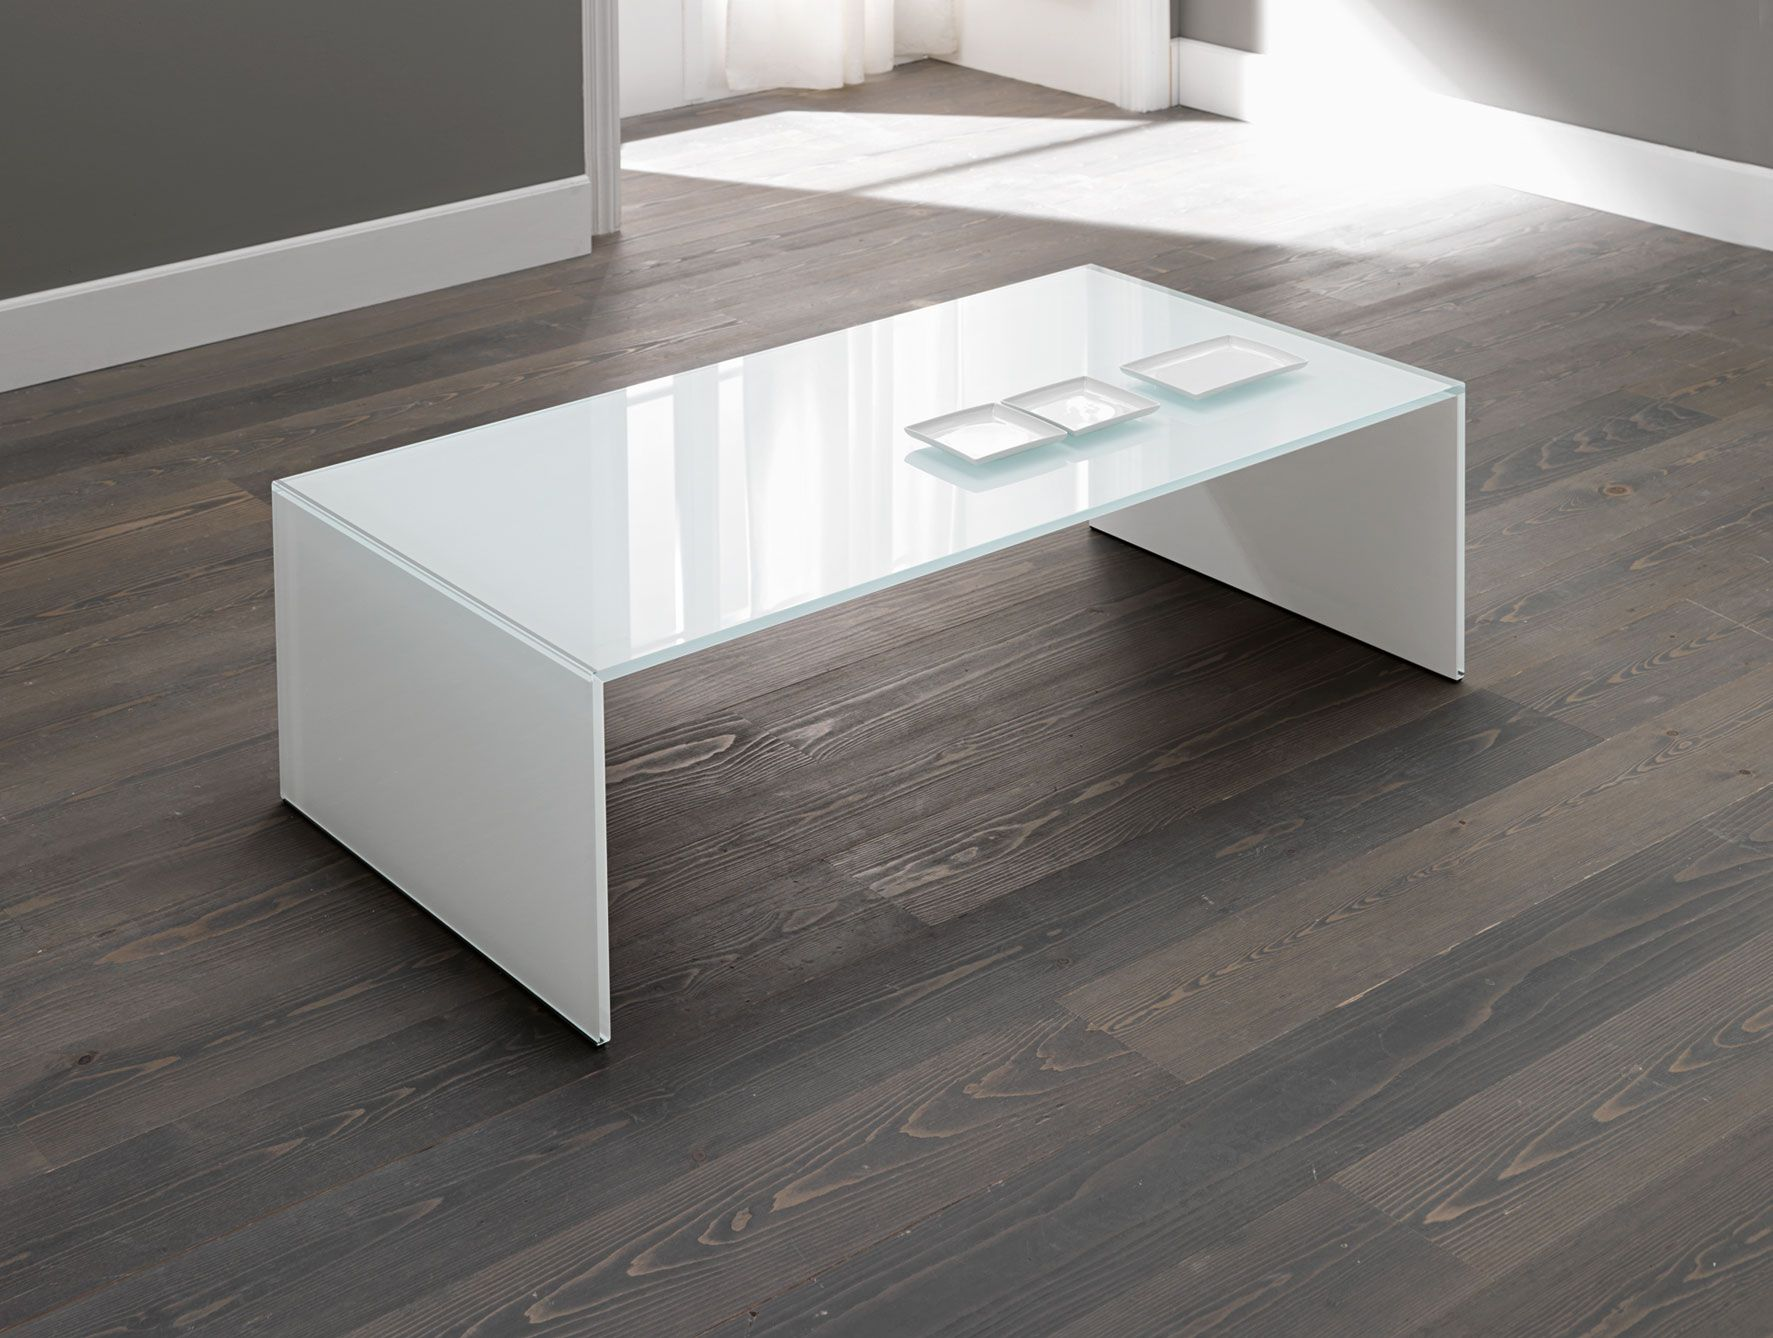 With the right decor a coffee table can be a key design element in your